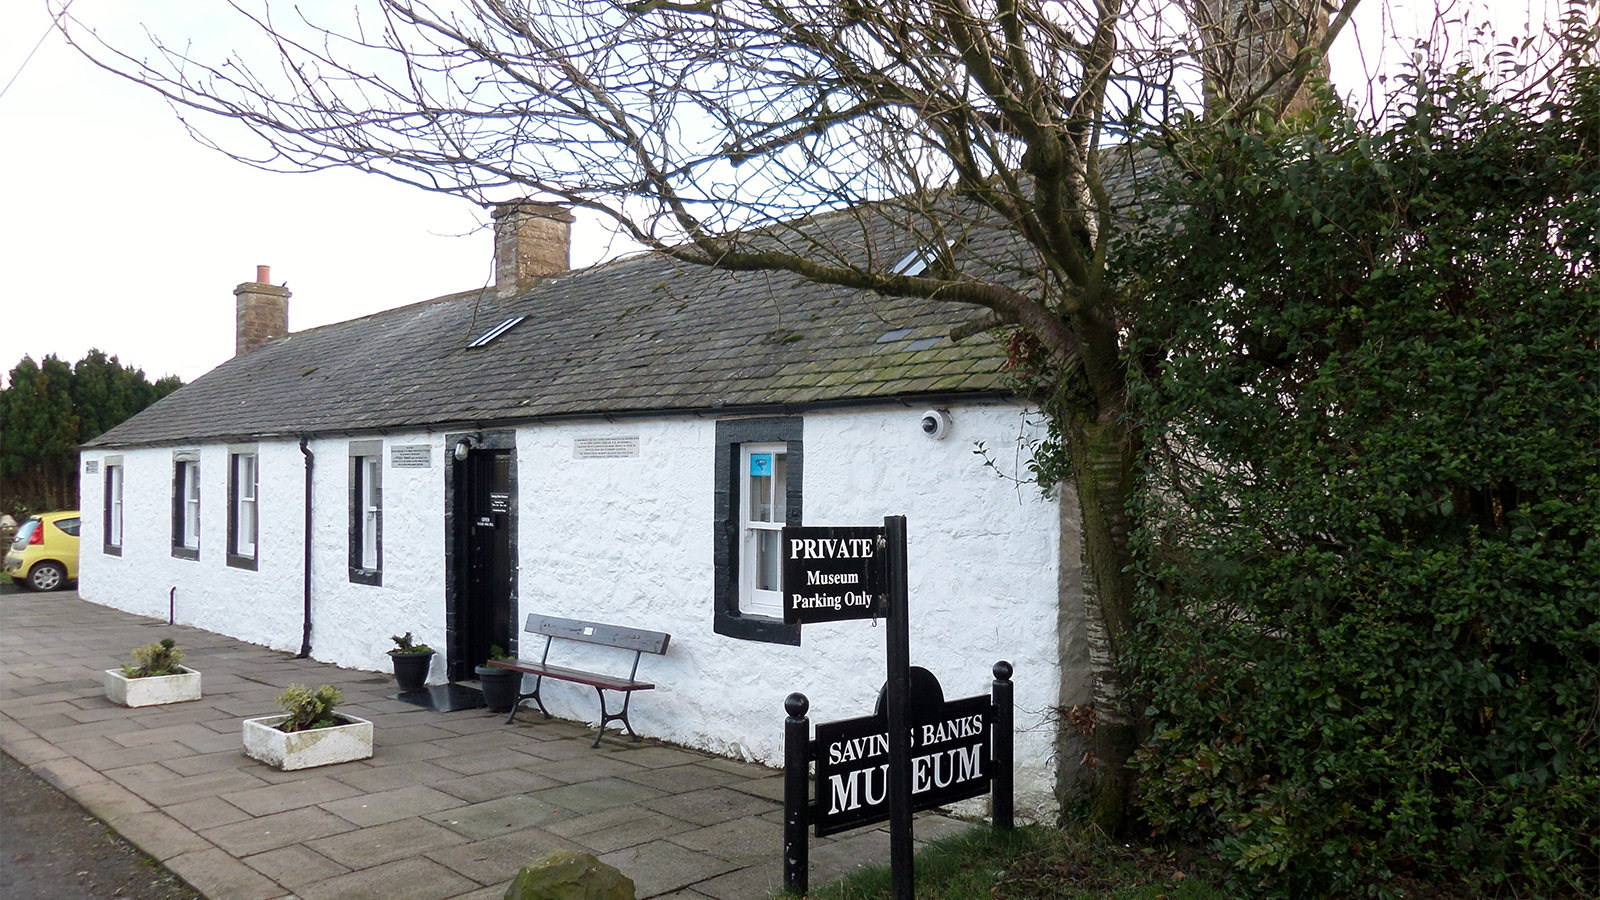 The museum is the home of the 'penny bank' founded by Henry Duncan in 1810